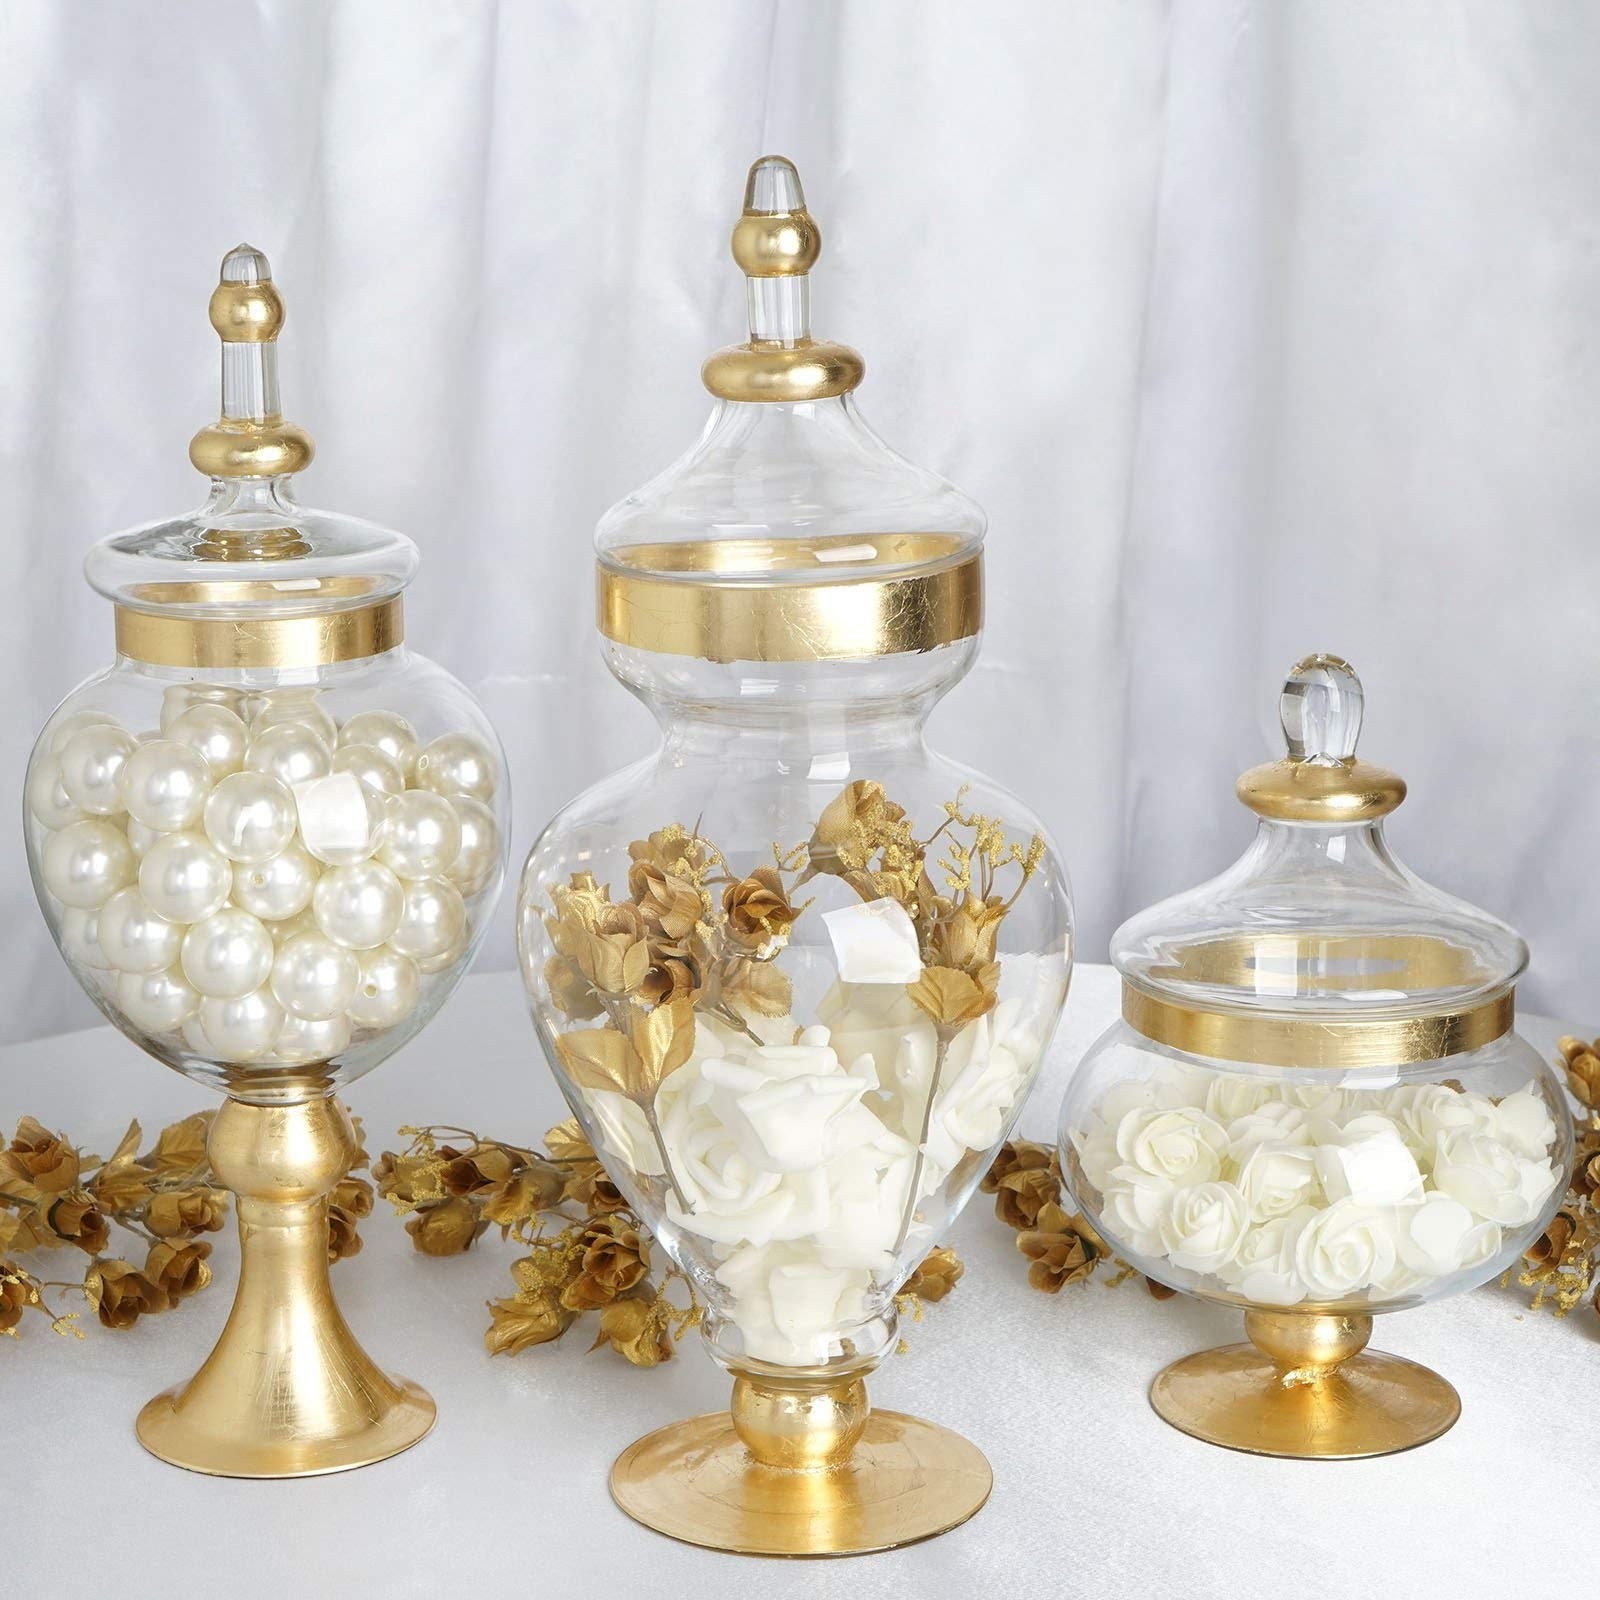 Efavormart Set of 3 Metallic Gold Rimmed Apothecary Glass Candy Jars Candy Buffet Containers with Lids -11''/16''/18'' by Efavormart